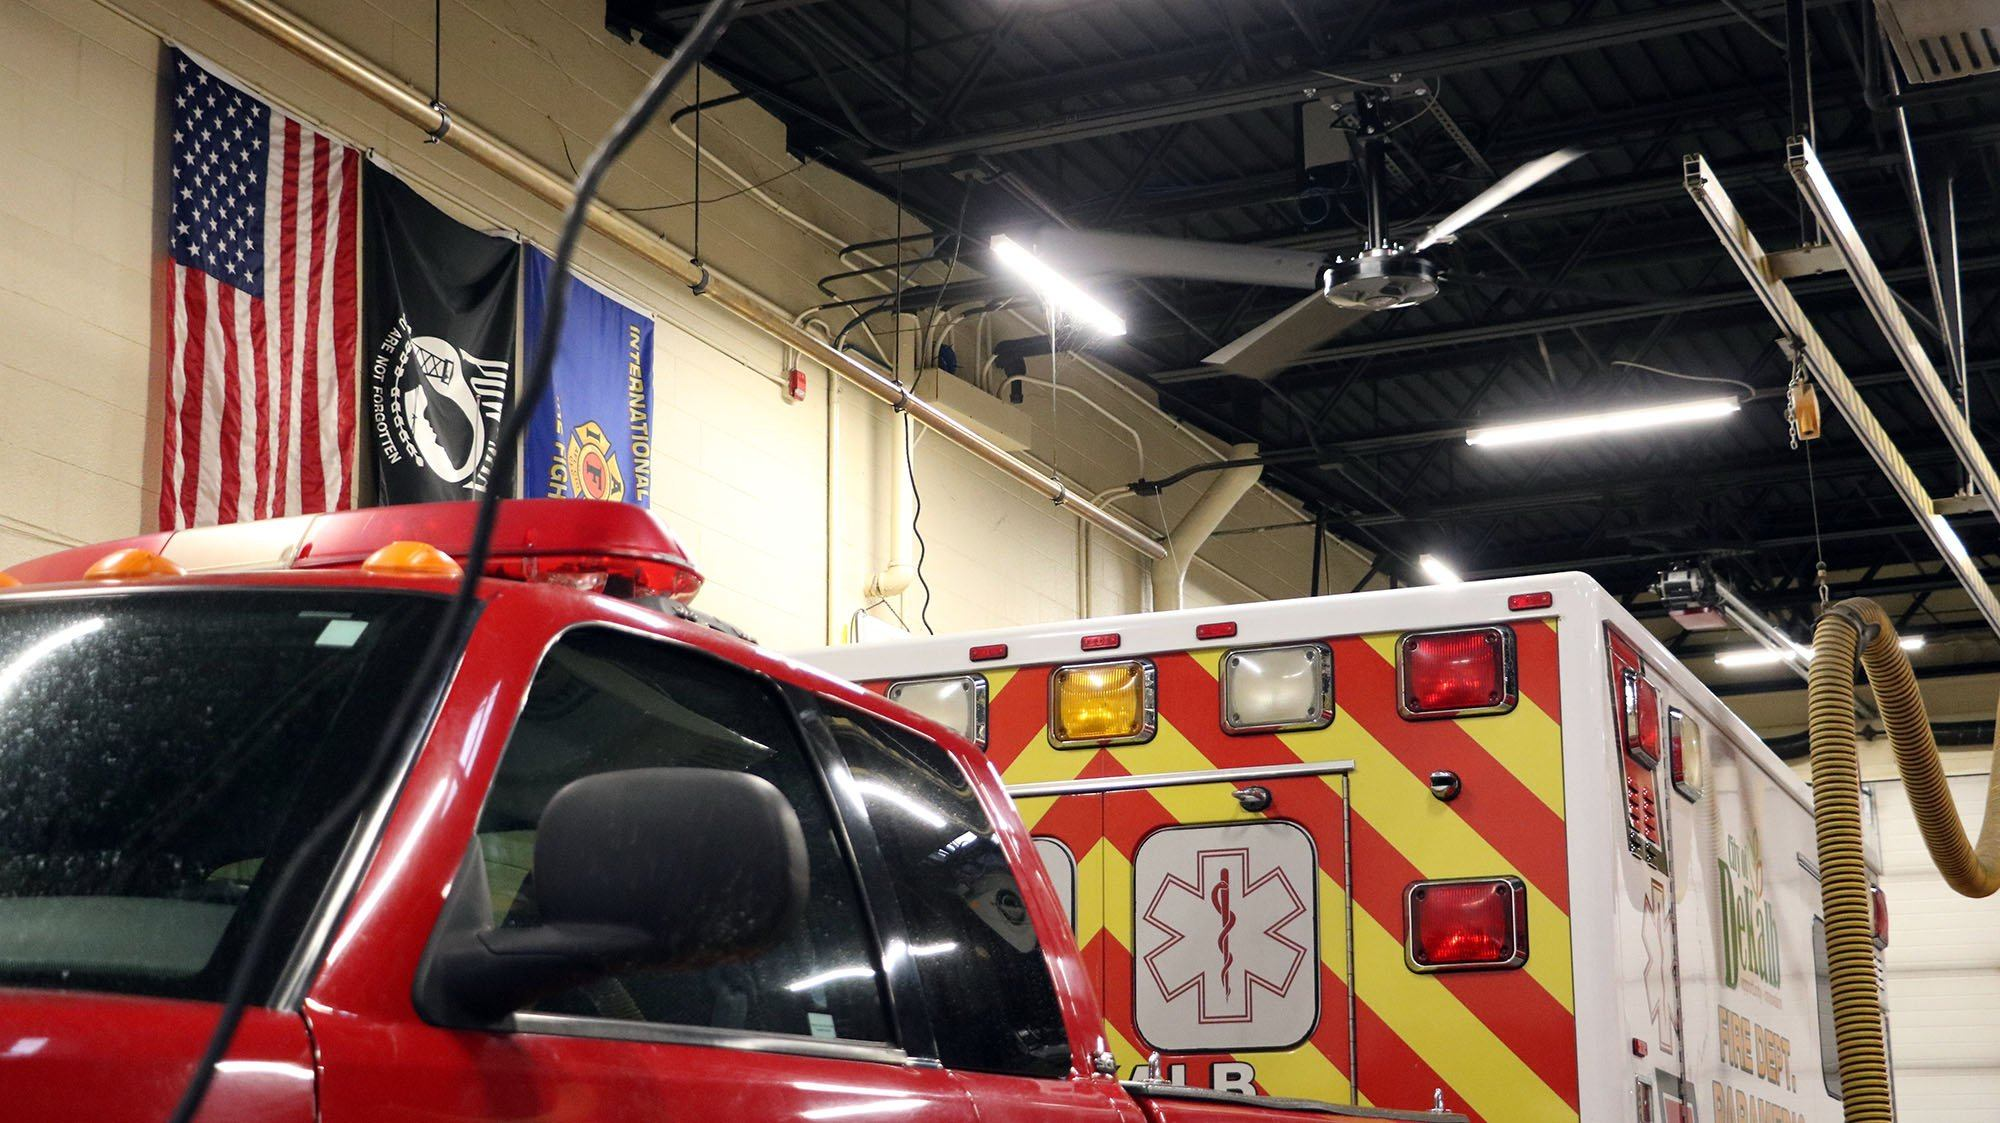 XP industrial garage fan keeps fire station temperature controlled year-round